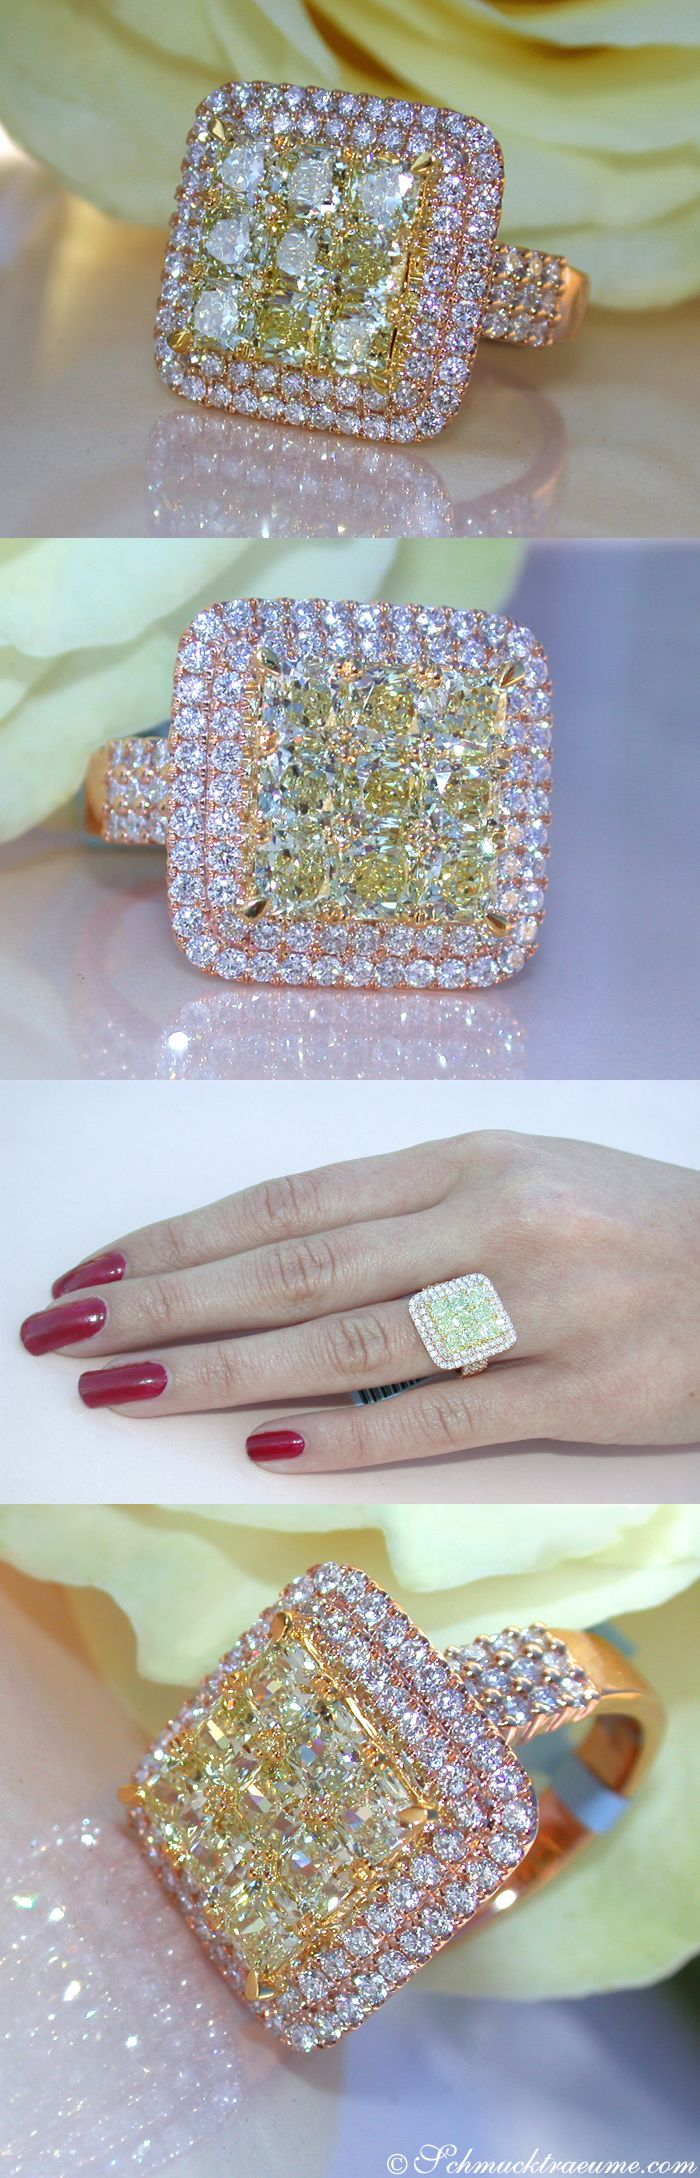 The best images about jewels on pinterest pink diamond